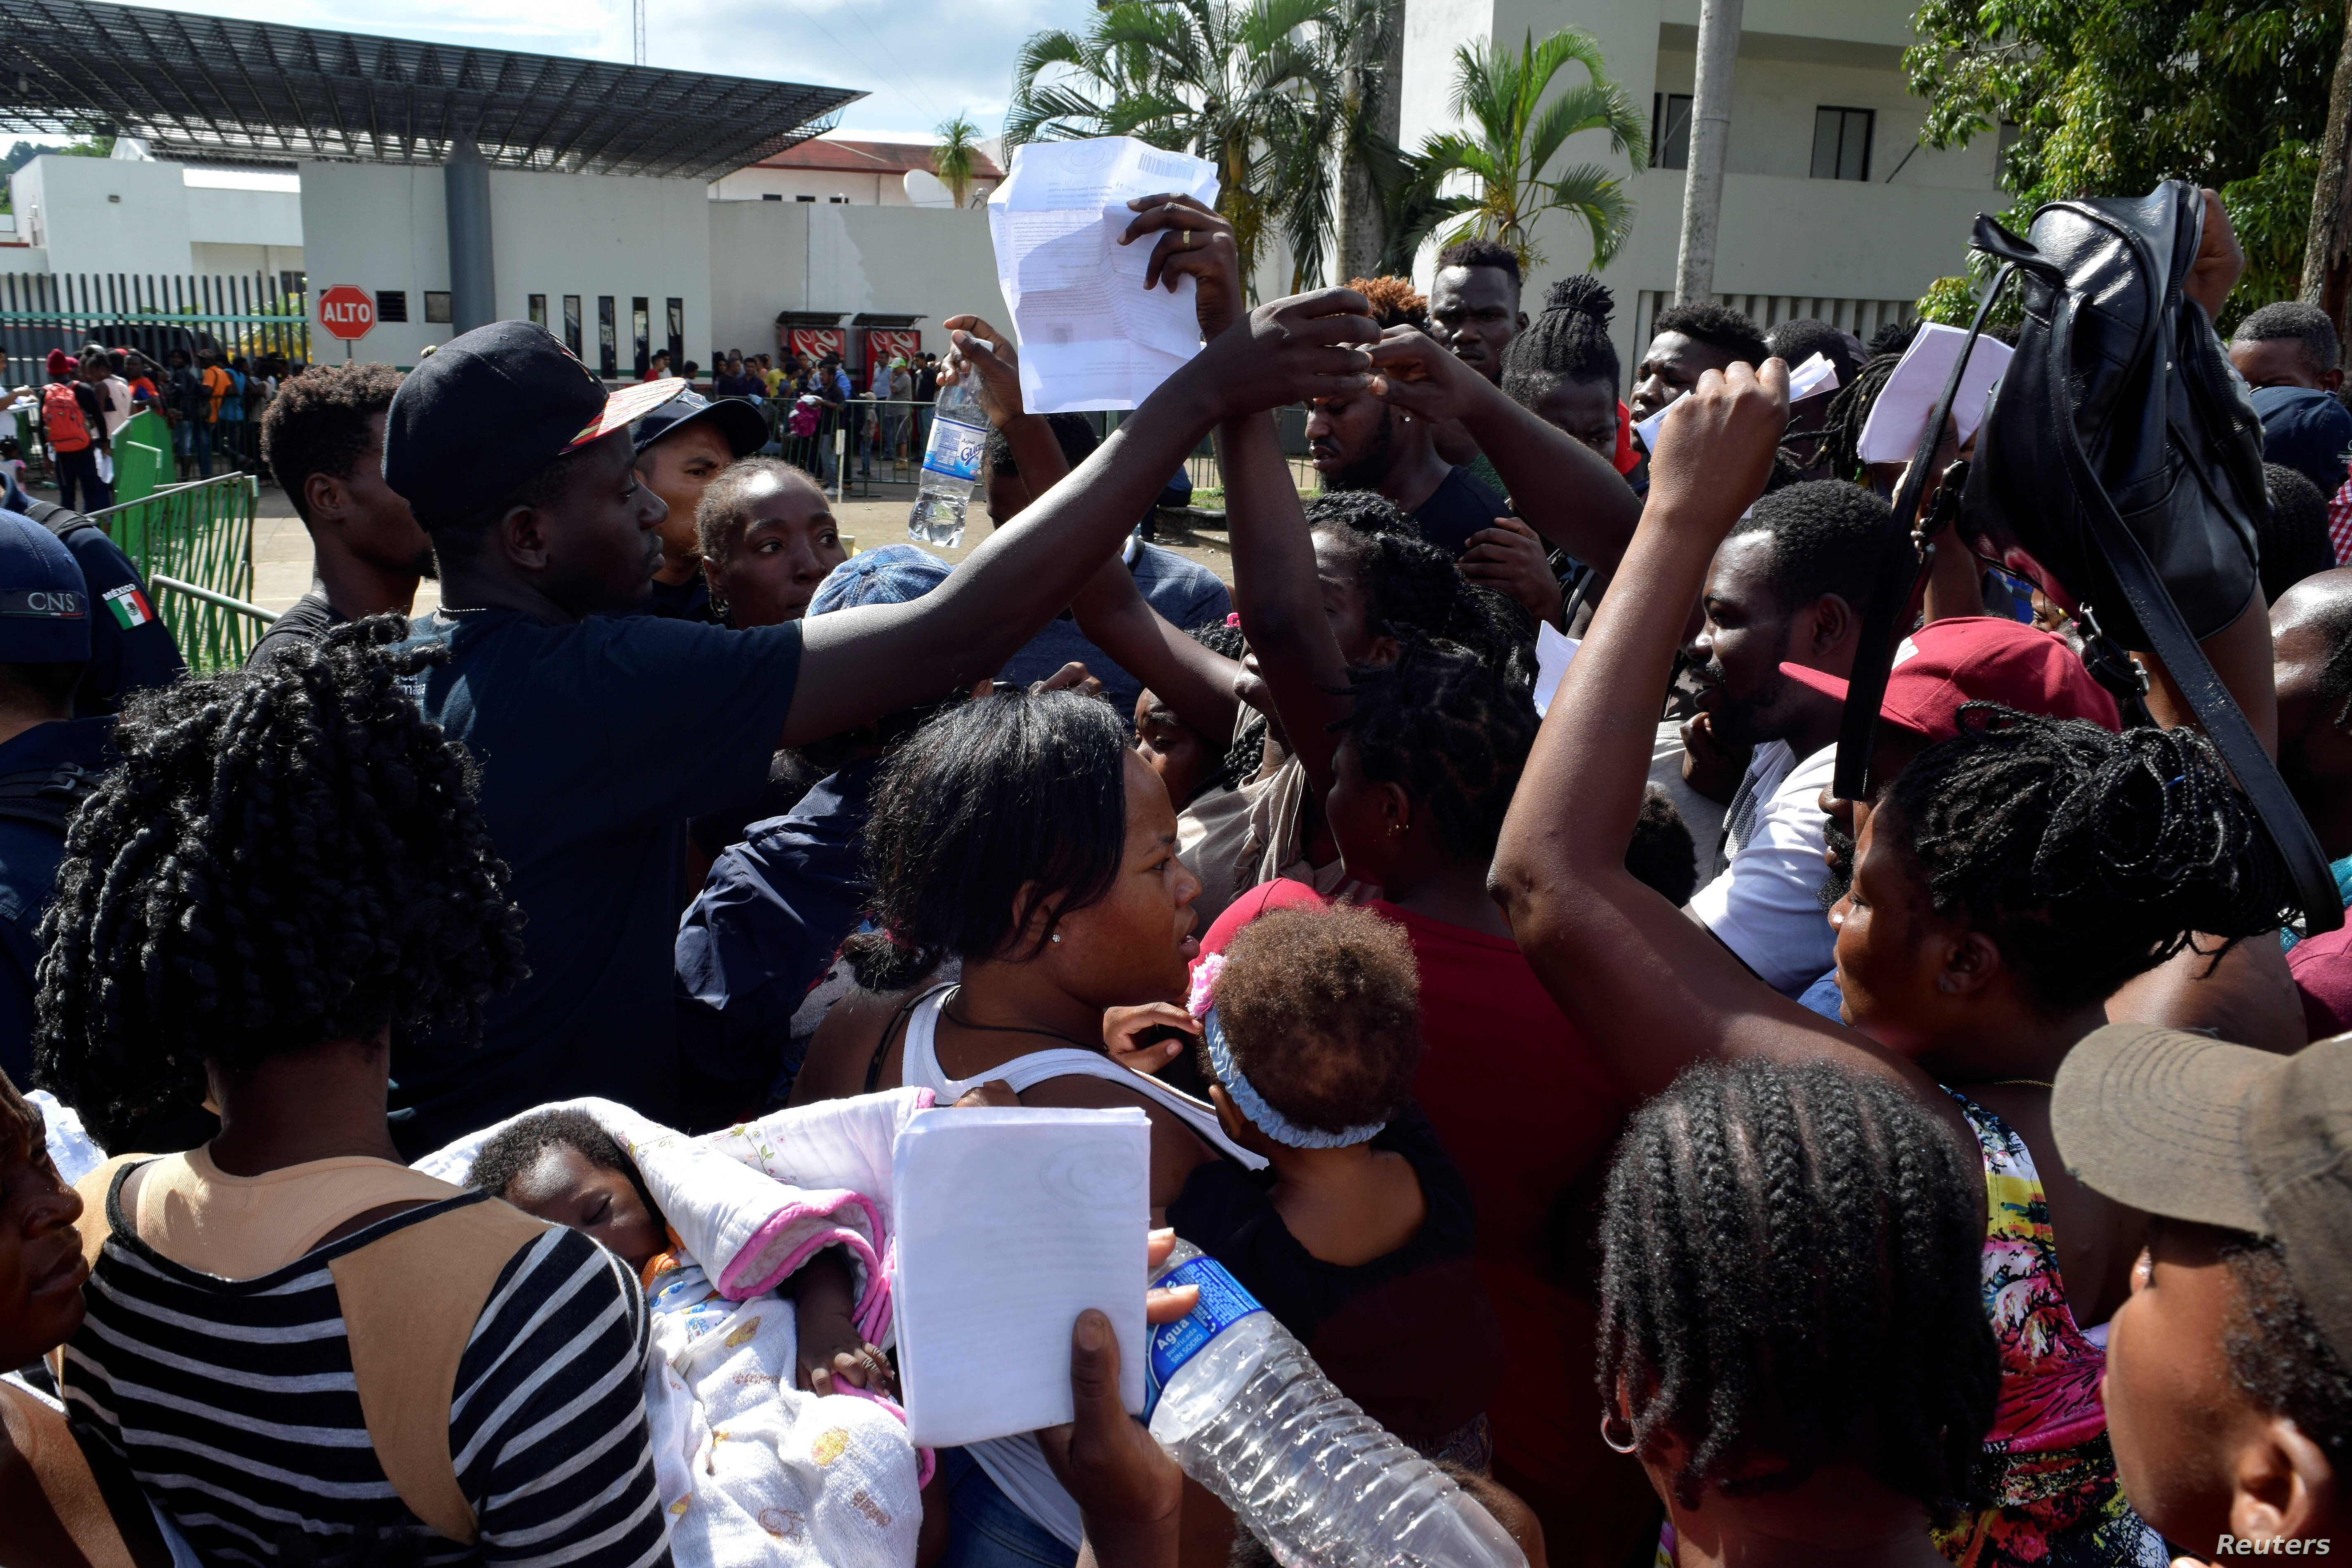 Migrants from Africa and Haiti try to enter the Siglo XXI immigrant detention center to request humanitarian visas, issued by the Mexican government, to cross the country toward the United States, in Tapachula, Mexico, June 27, 2019.